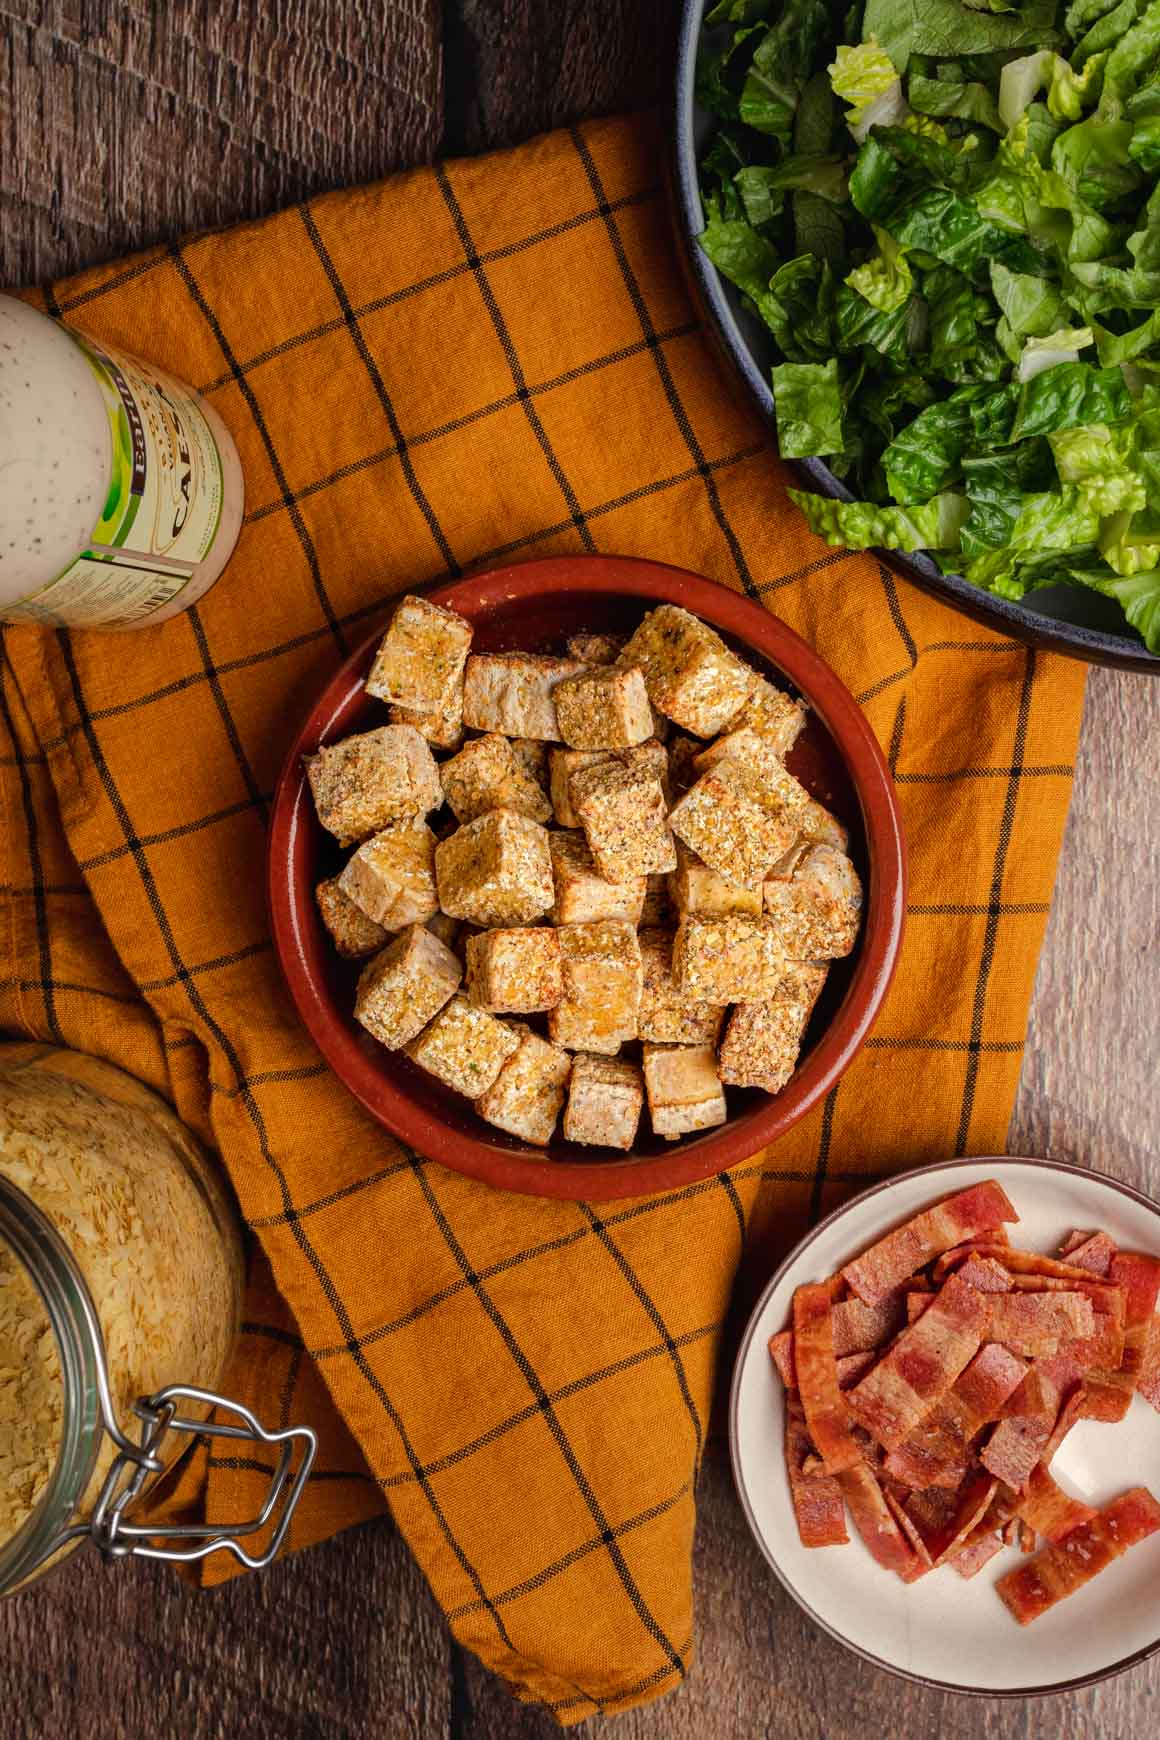 Top down shot of a bowl fo crispy tofu cubes with a yellow cloth underneath. In the corners of the image you can see a bowl of shredded iceberg lettuce, a bowl of crispy vegan bacon, a jar of nutritional yeast, and a bottle of vegan caesar dressing.